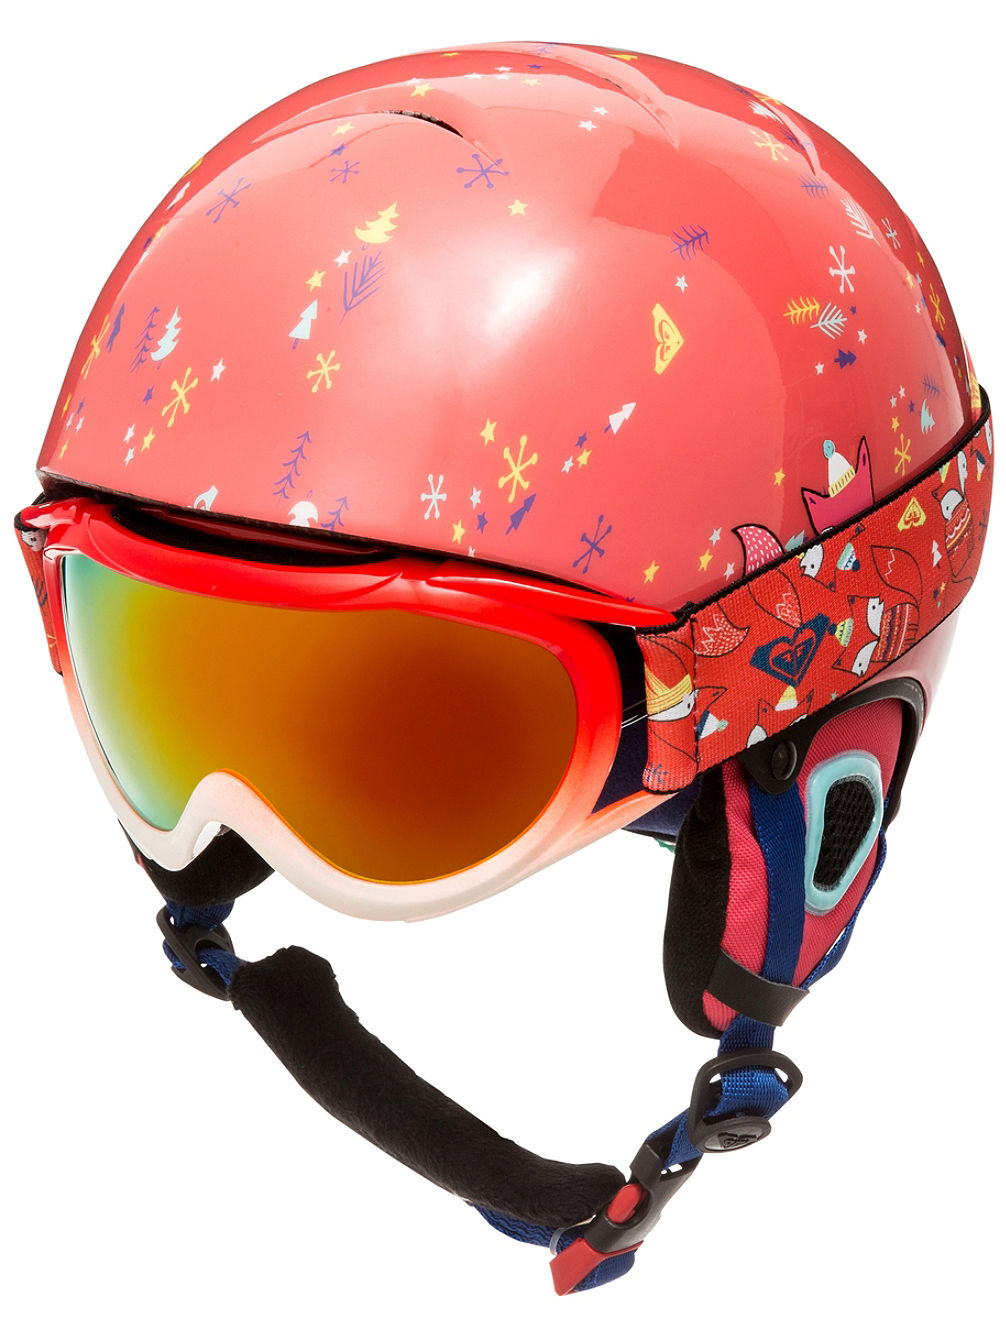 Misty Pack Goggle Helmet Youth